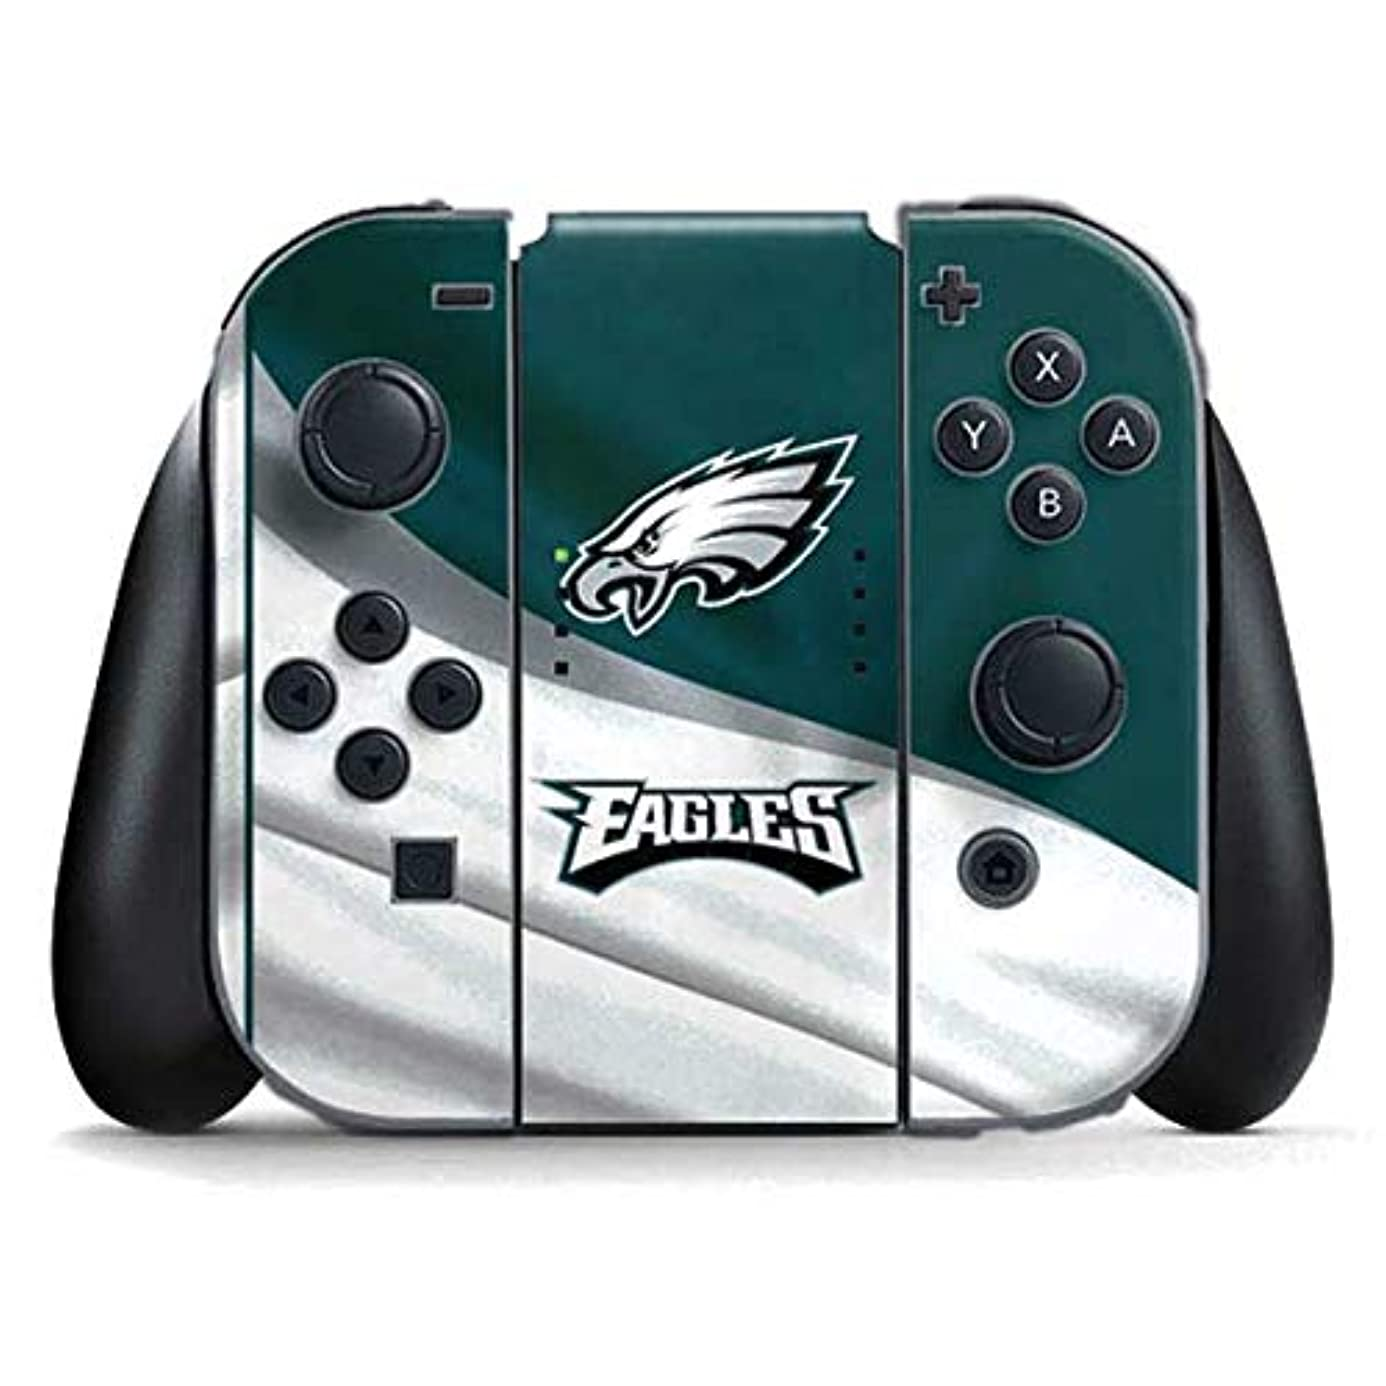 Skinit Philadelphia Eagles Nintendo Switch Joy Con Controller Skin - Officially Licensed NFL Gaming Decal - Ultra Thin, Lightweight Vinyl Decal Protection